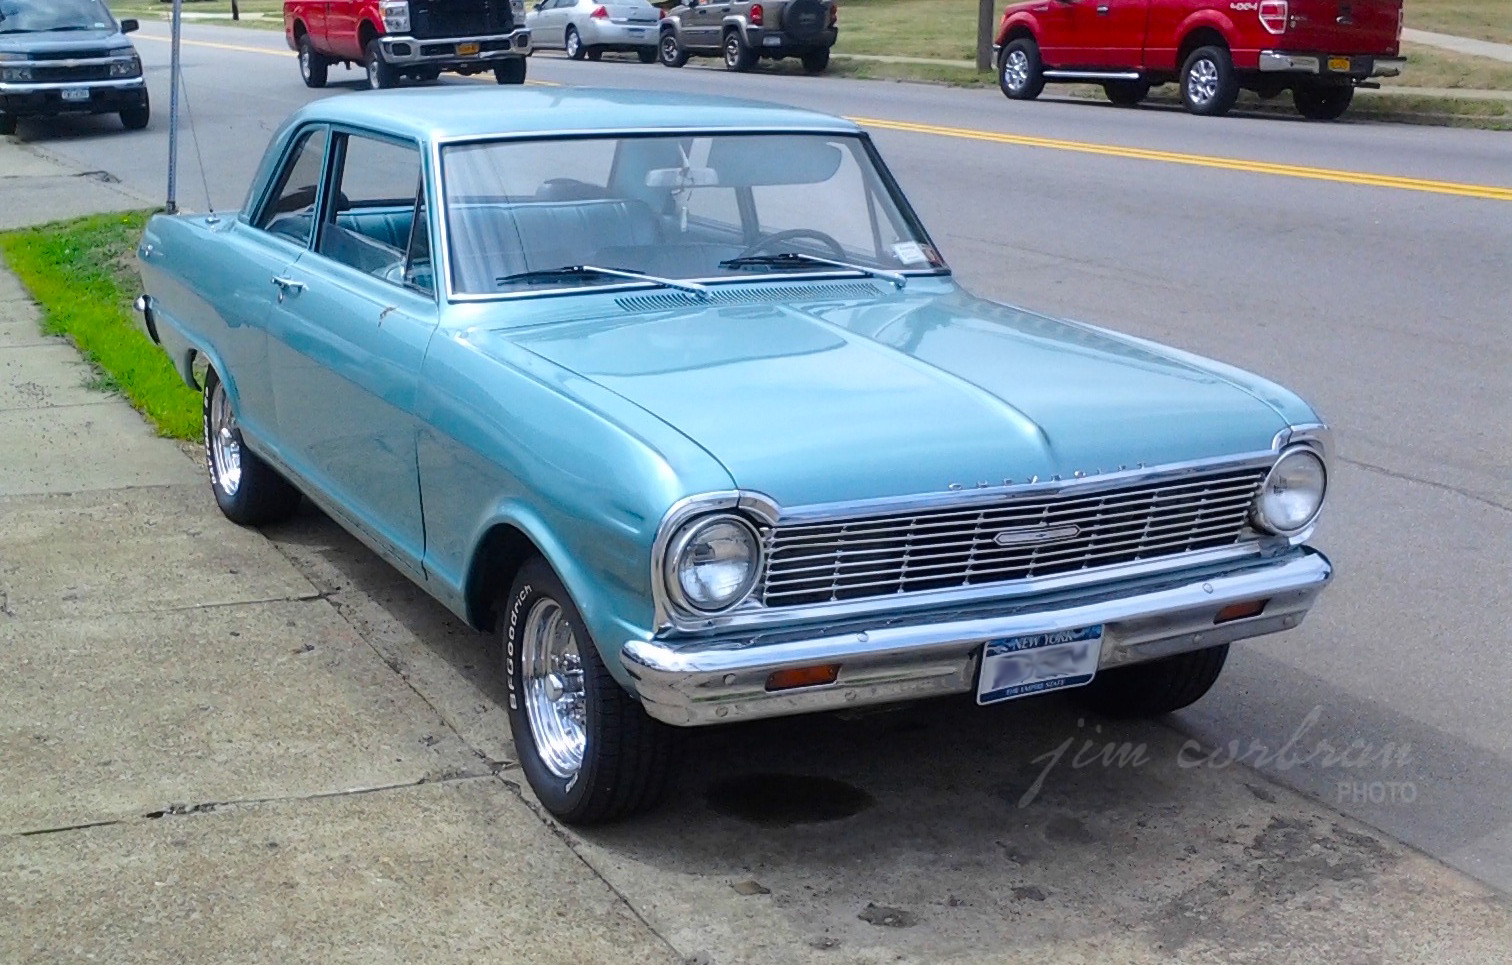 RealRides of WNY - 1965 Chevy II